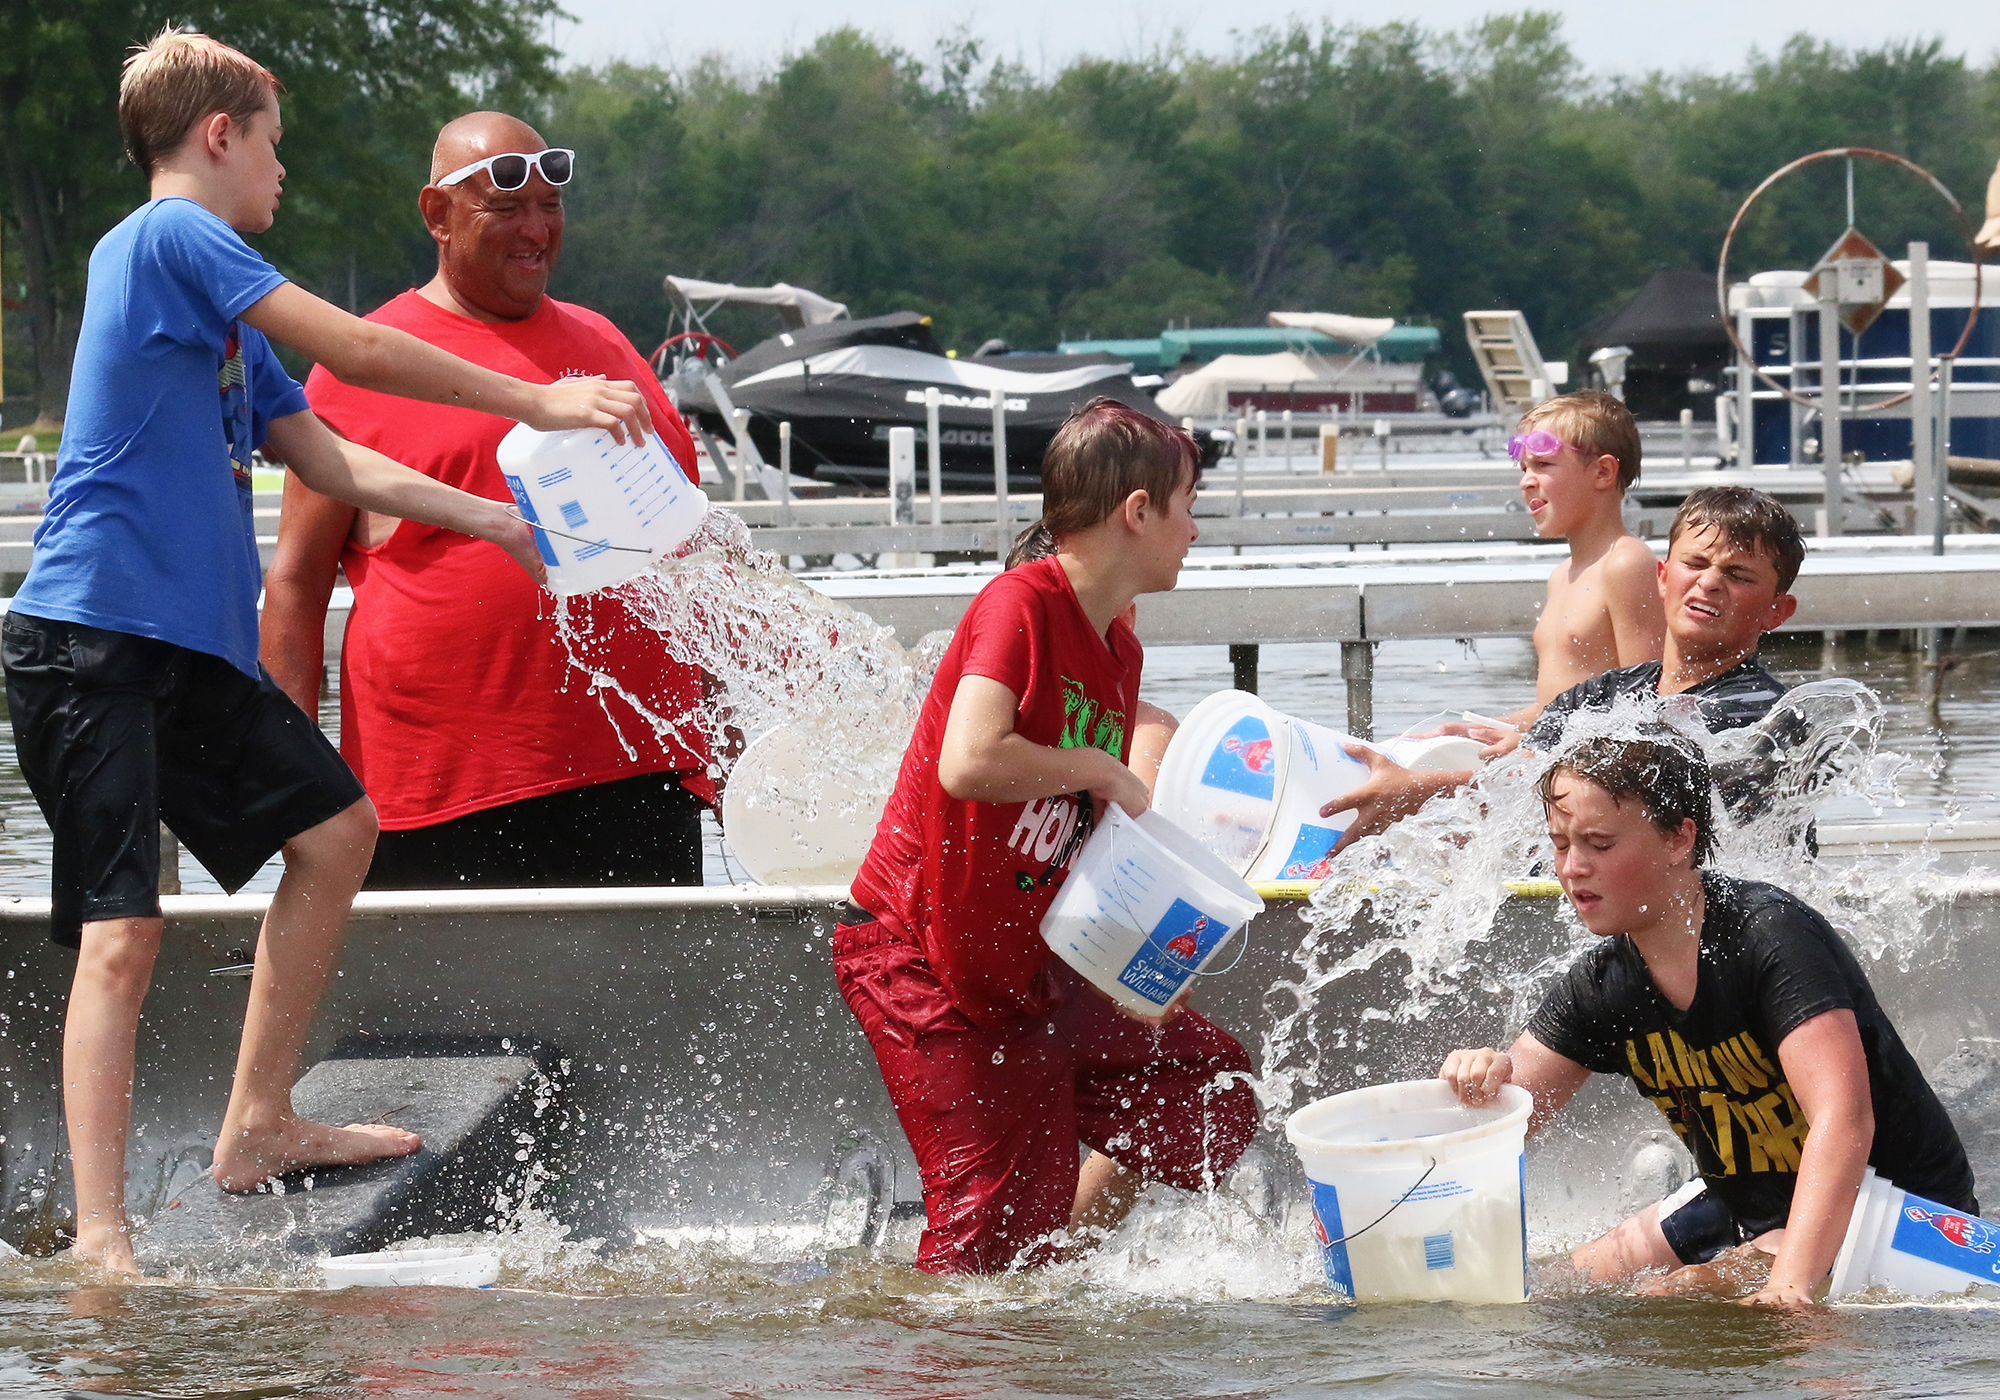 The youth participants at the annual Bamboo Bar boat sinking poured water into other teams' boats under the watchful supervision of adult judges. The event was held on a sultry Sunday afternoon on the south shore of Shawano Lake. The winning youth team won two candy bars, a soda and bragging rights.Carol Ryczek | NEW Media